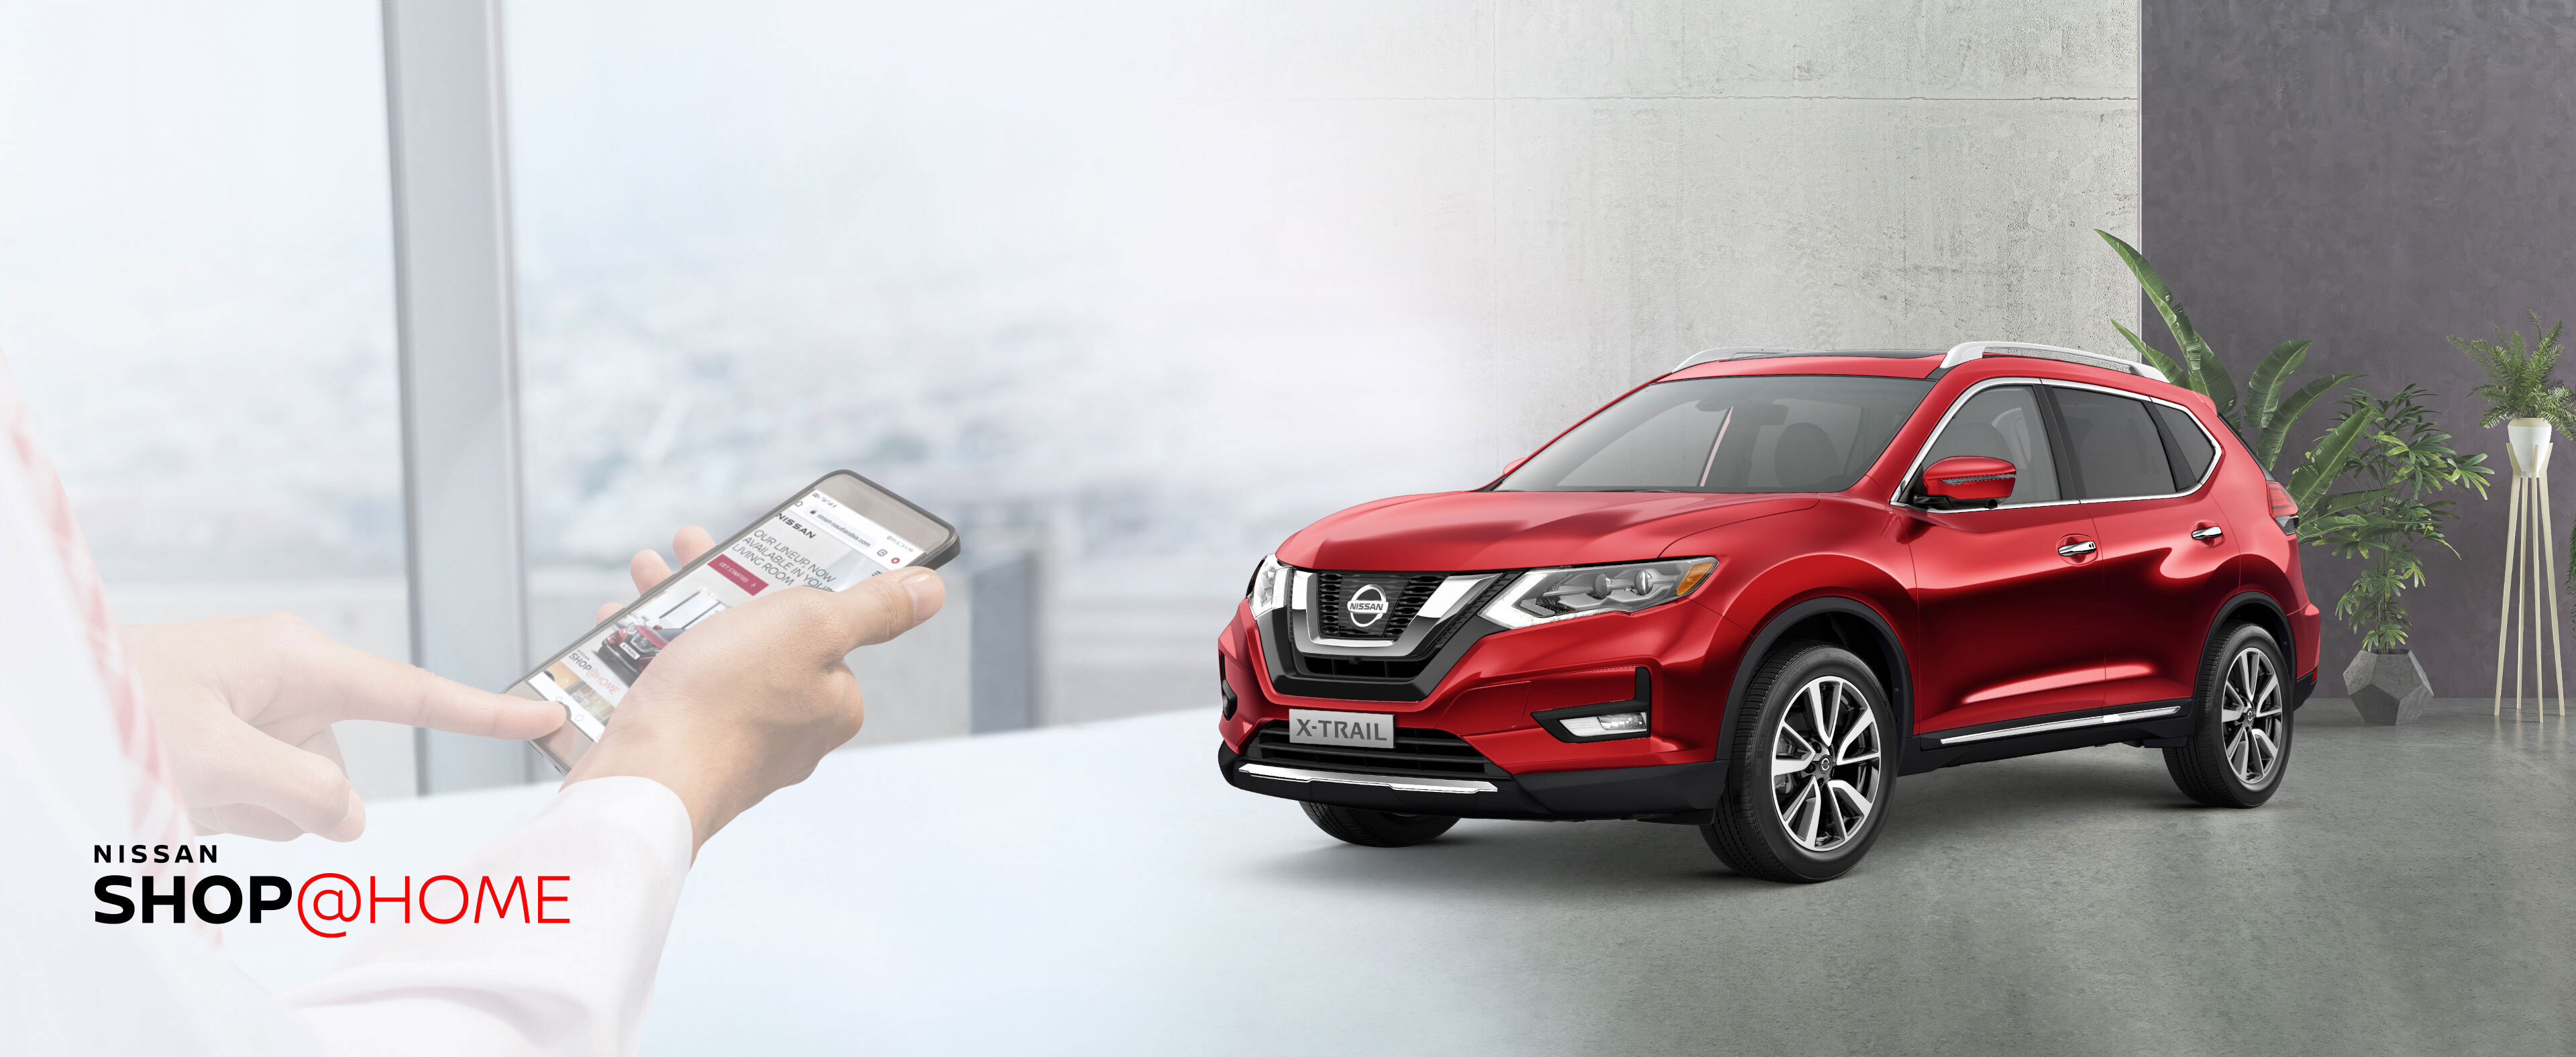 Red NISSAN X-TRAIL in the garage